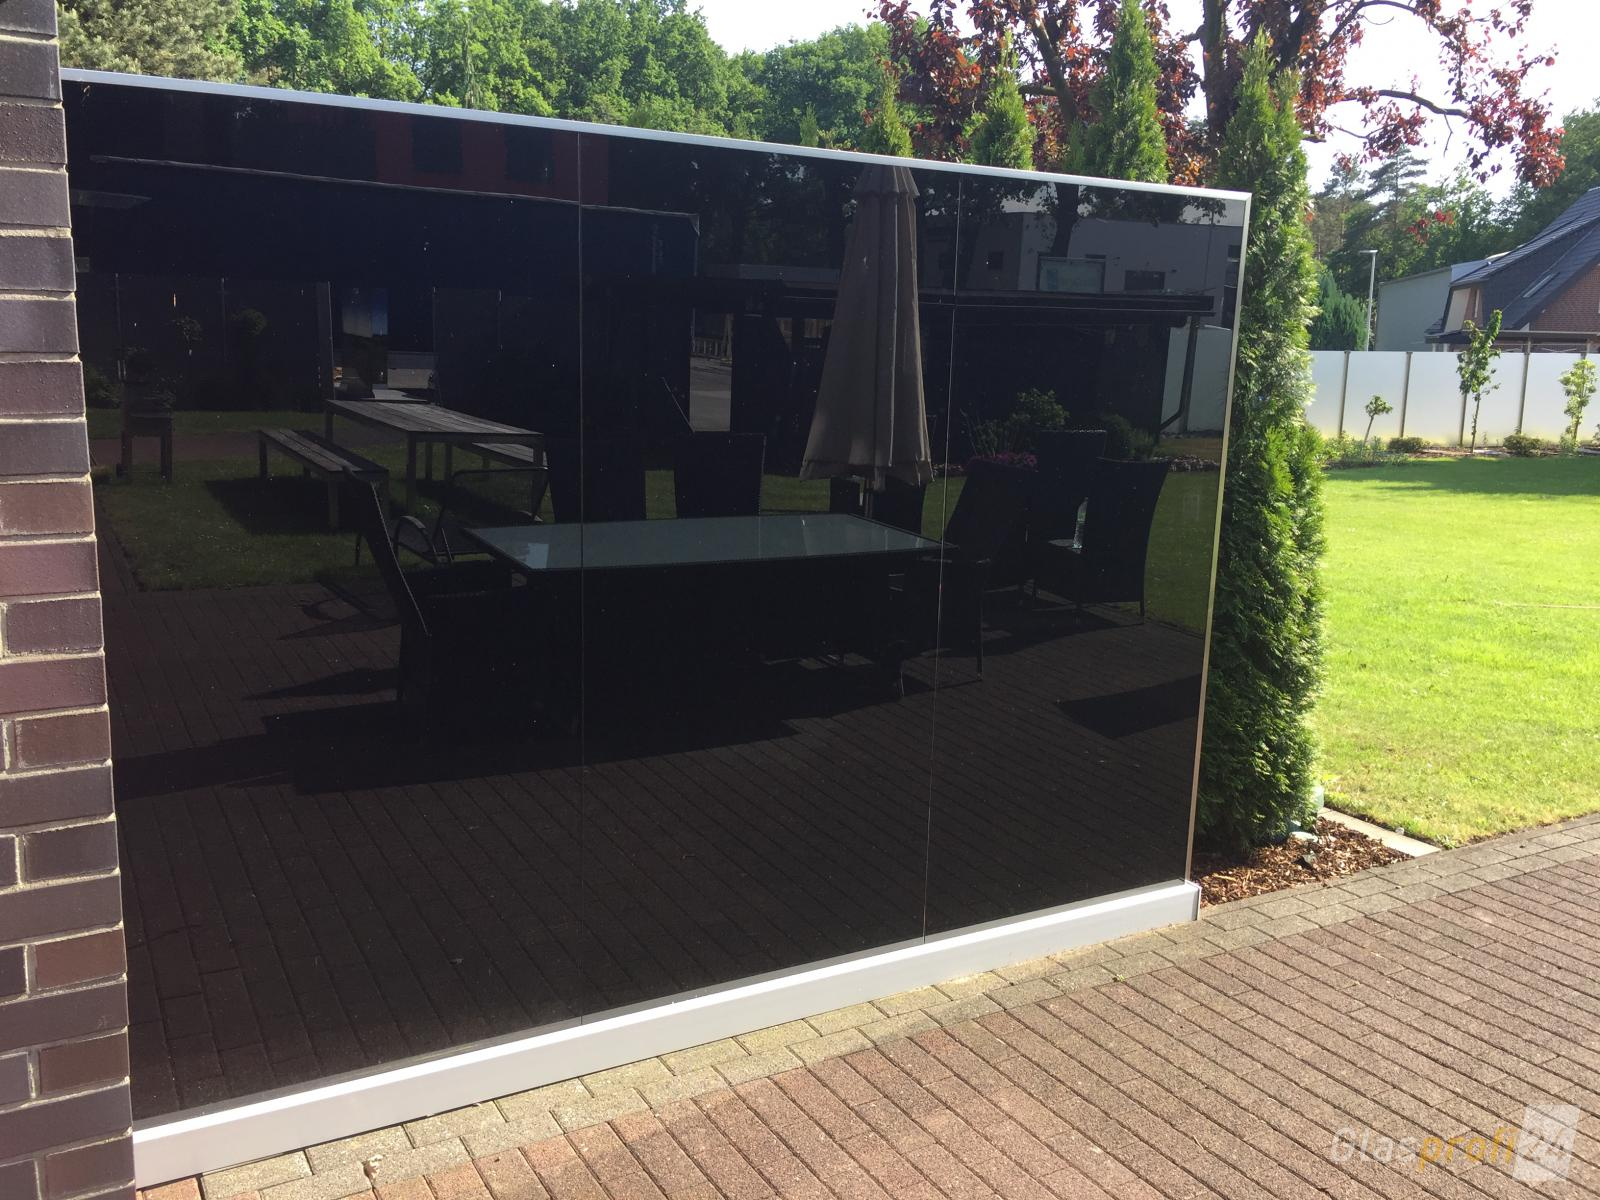 wind sichtschutz terrasse windschutz fur terrasse aus plexiglas terrassen hofsaess markisen. Black Bedroom Furniture Sets. Home Design Ideas